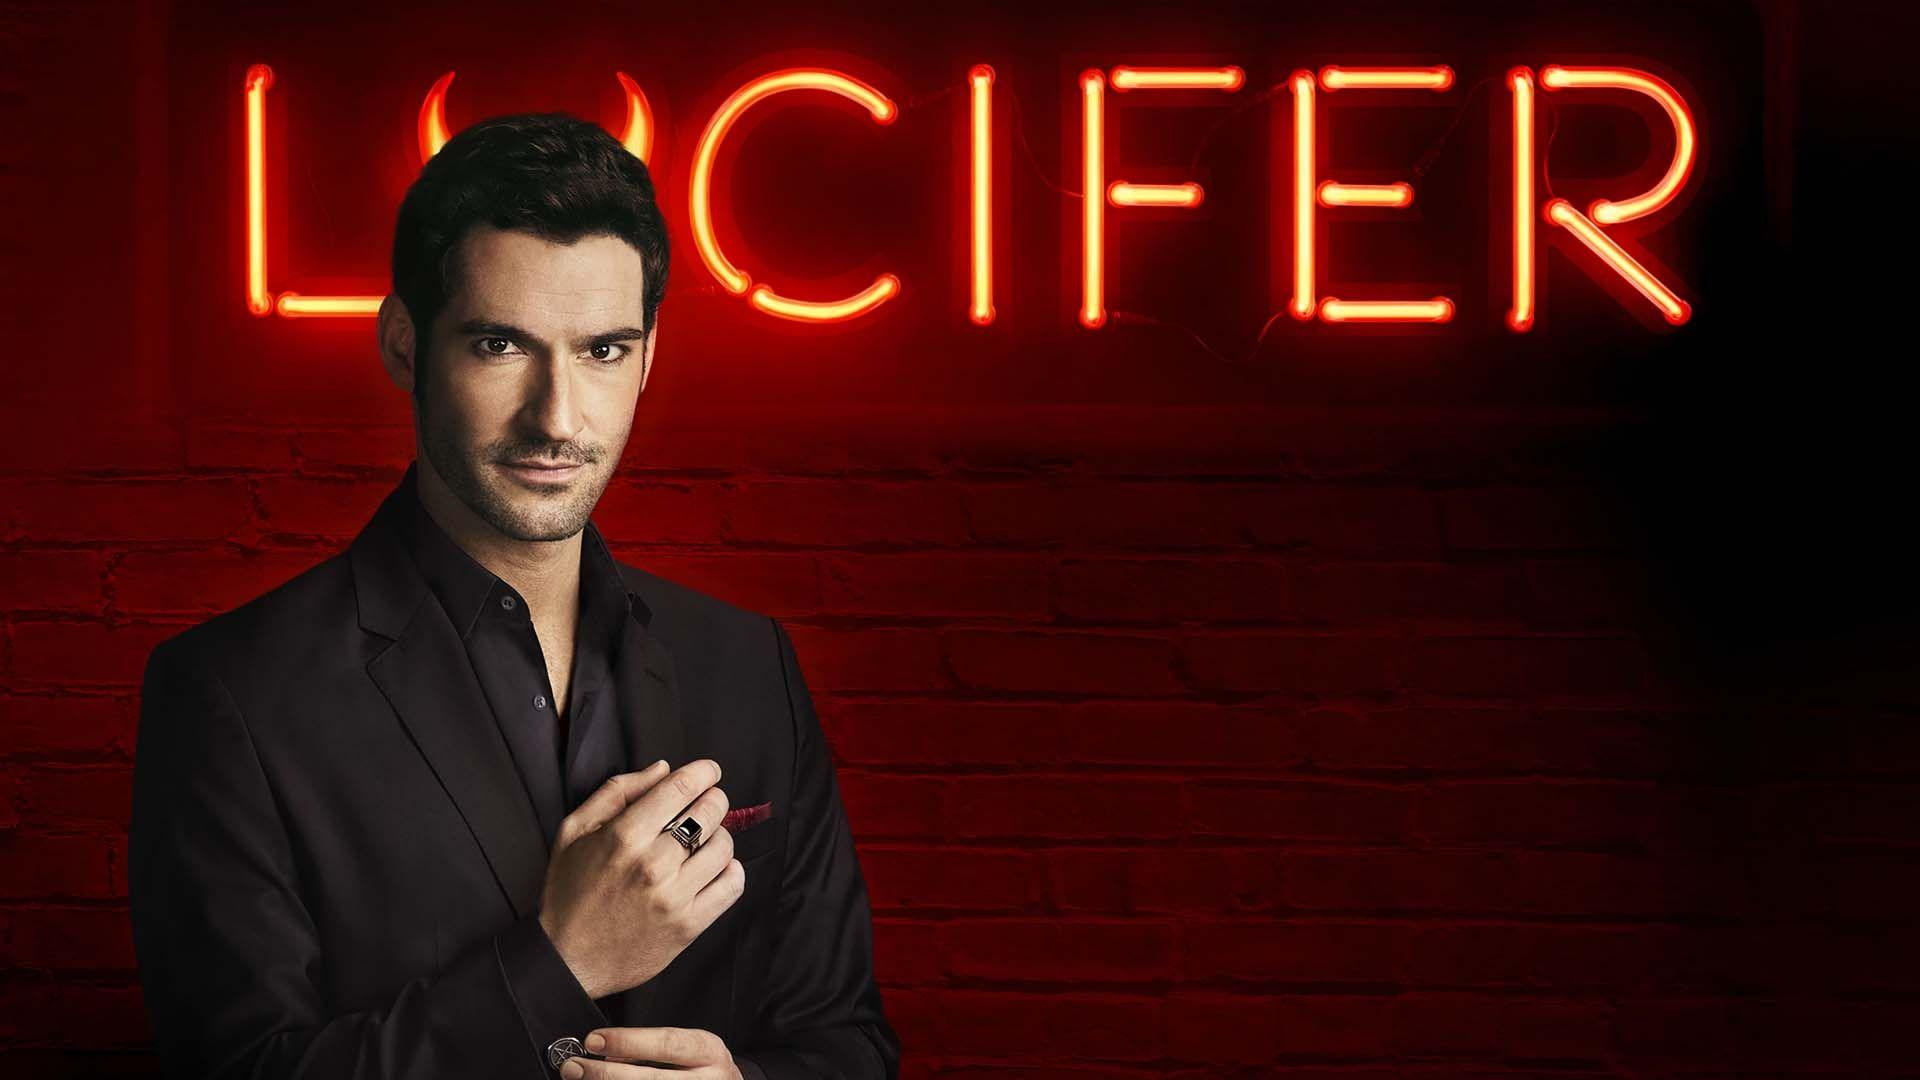 6 Lucifer HD Wallpapers | Backgrounds - Wallpaper Abyss